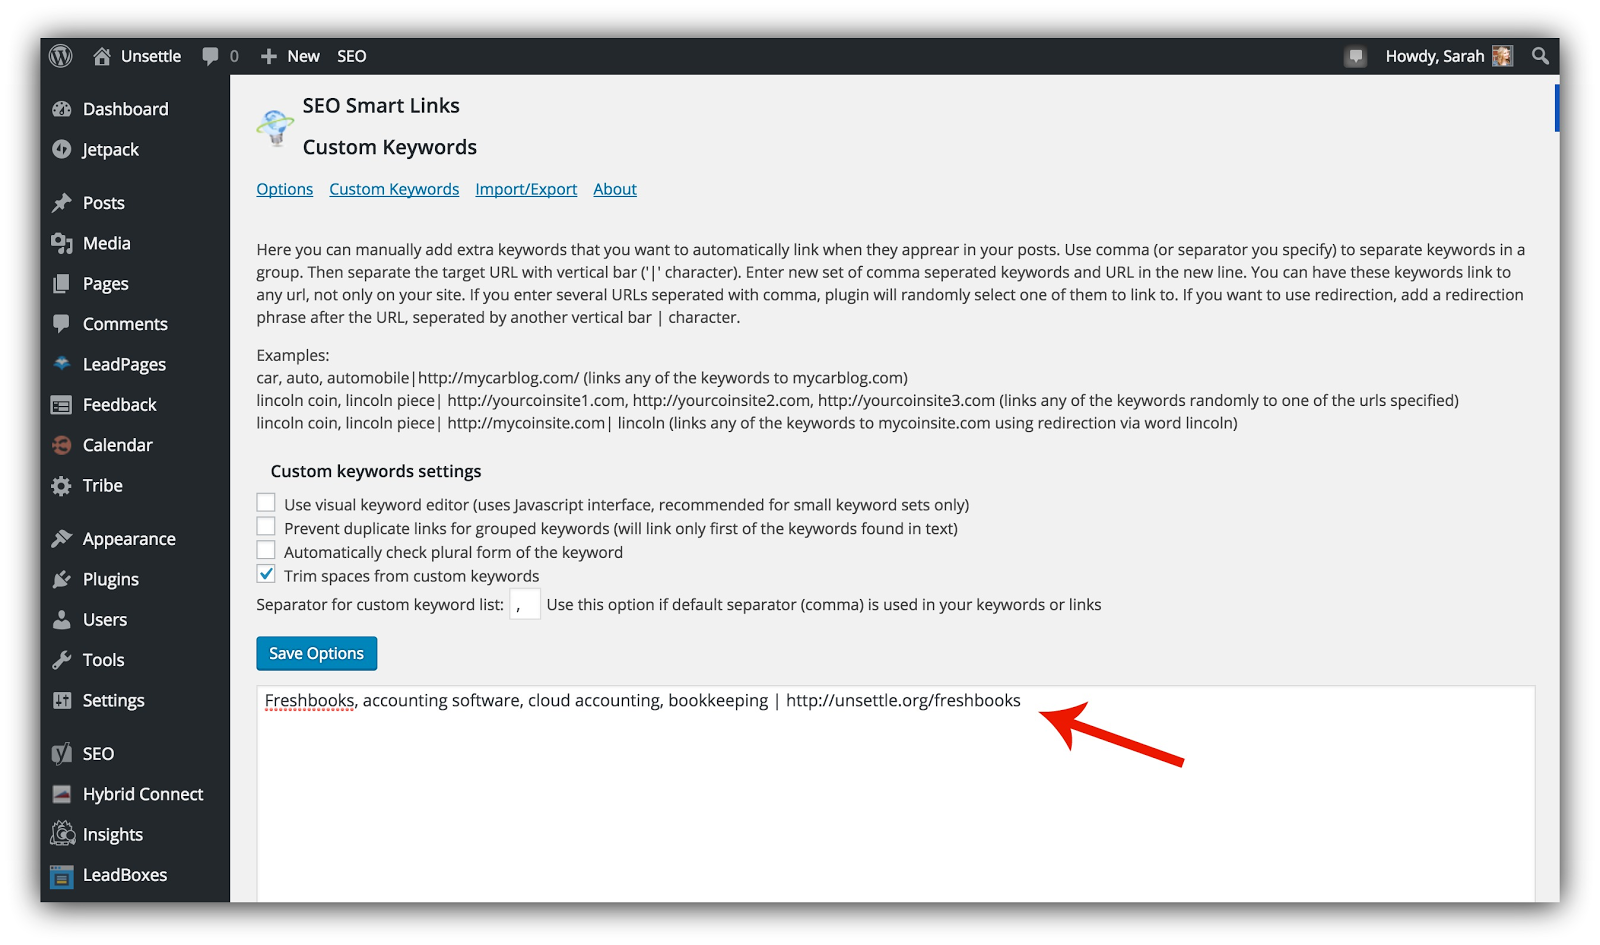 Screenshot of the SEO Smart Links wordpress plugin